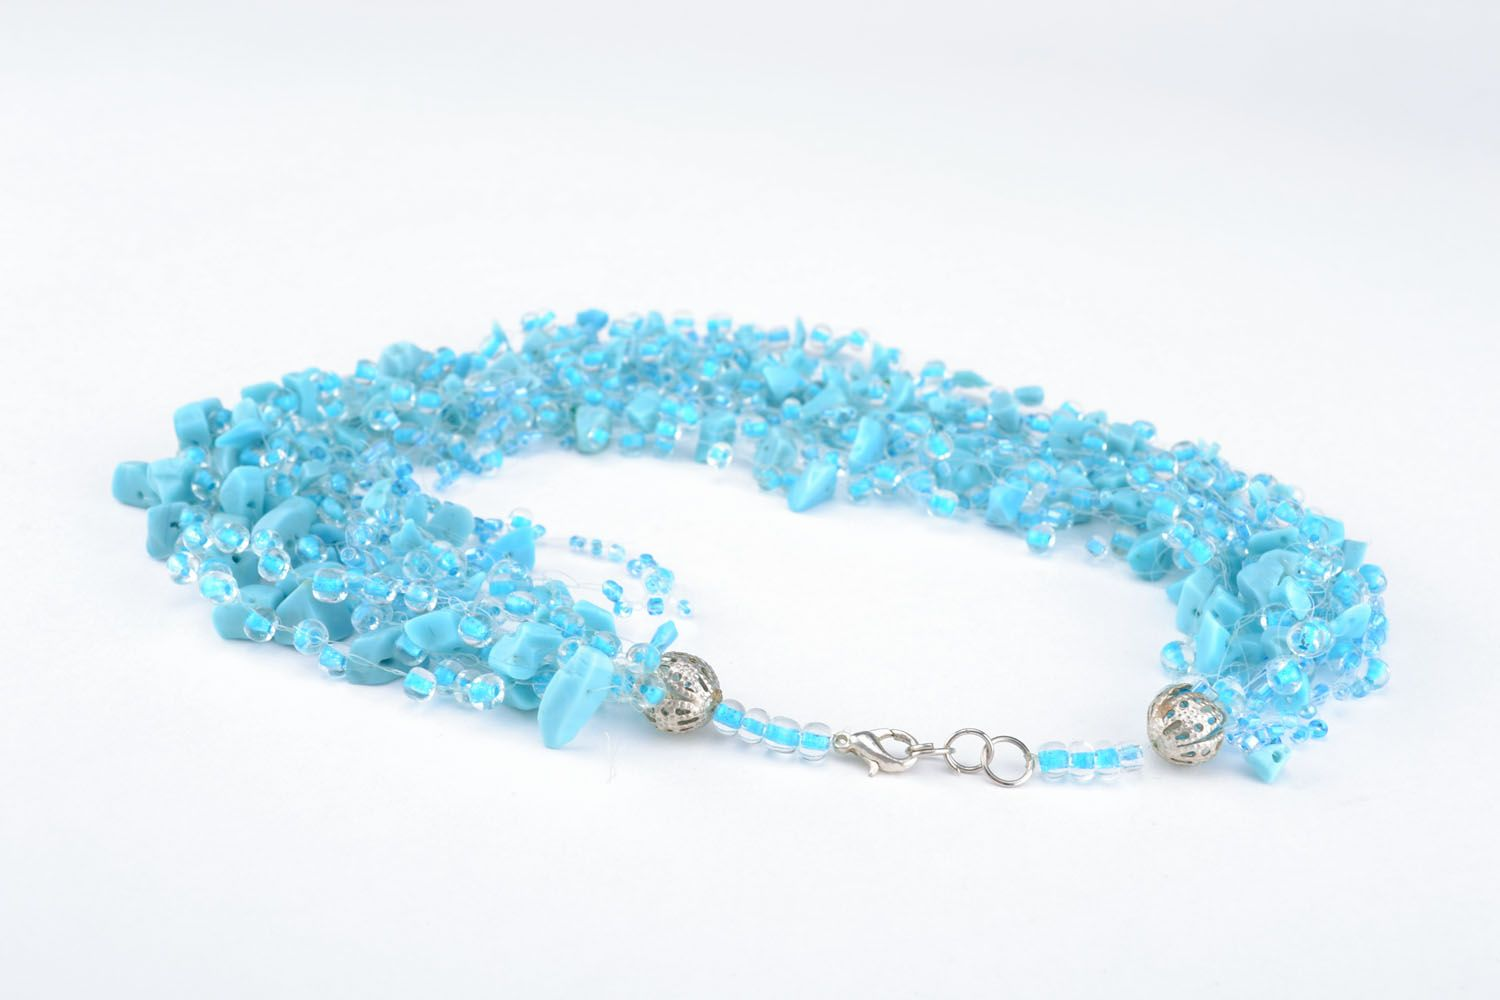 Necklace with turquoise and beads photo 3